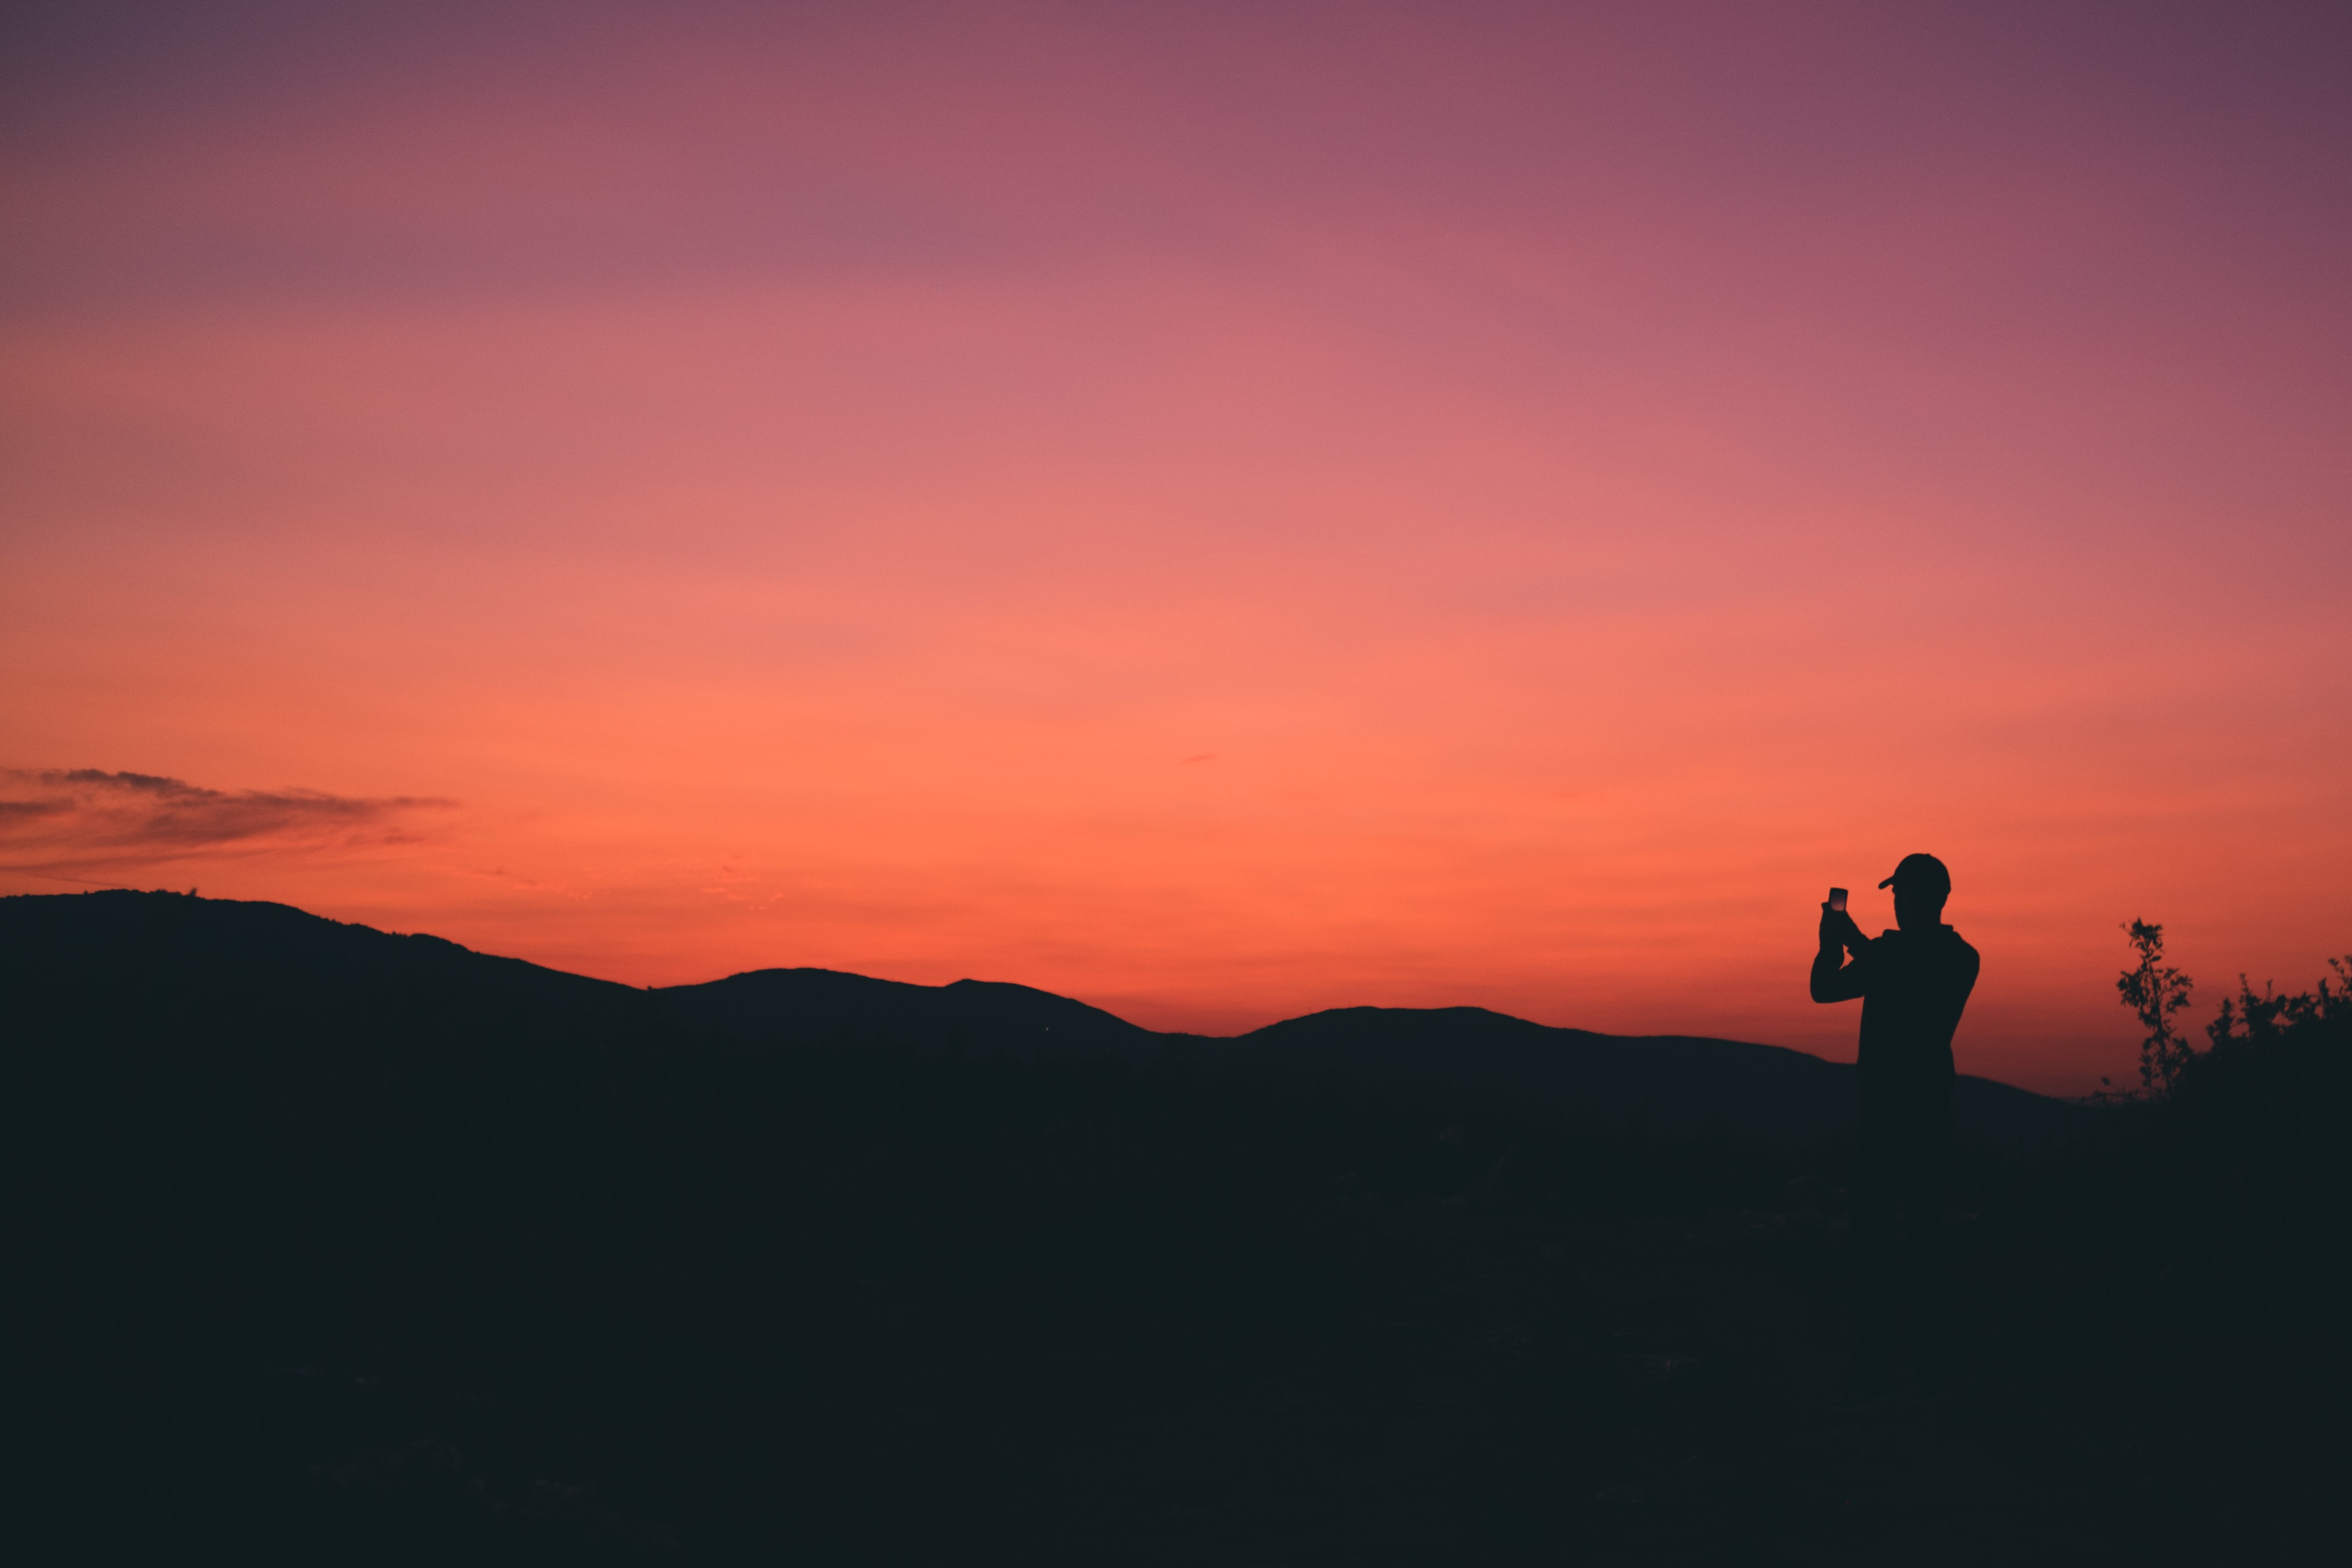 silhouette of person taking photo of mountain during sunset